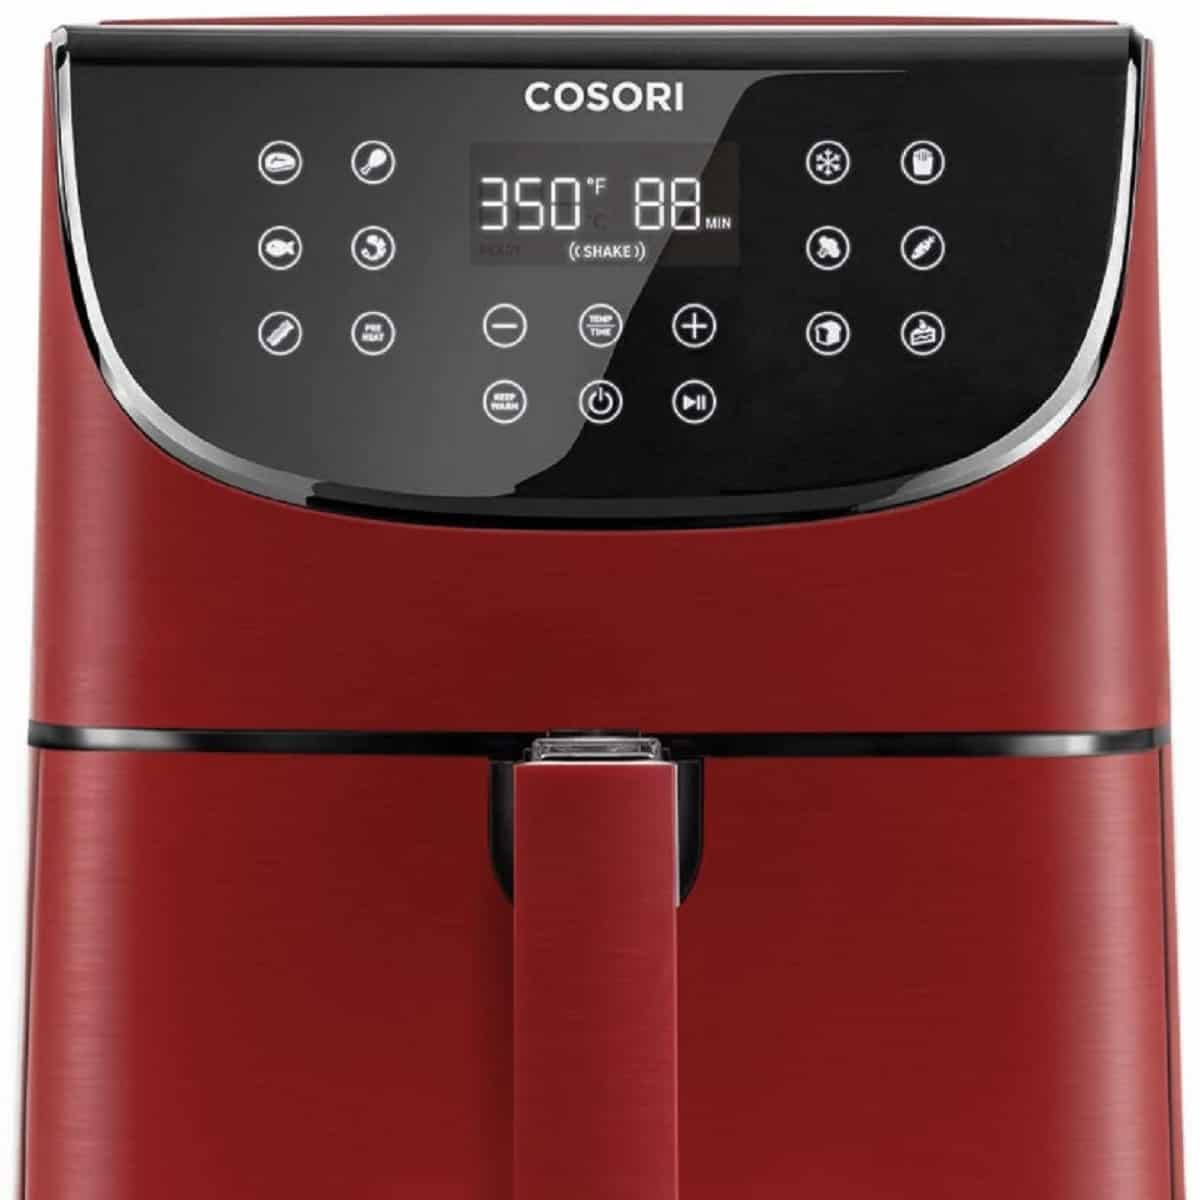 red cosori air fryer